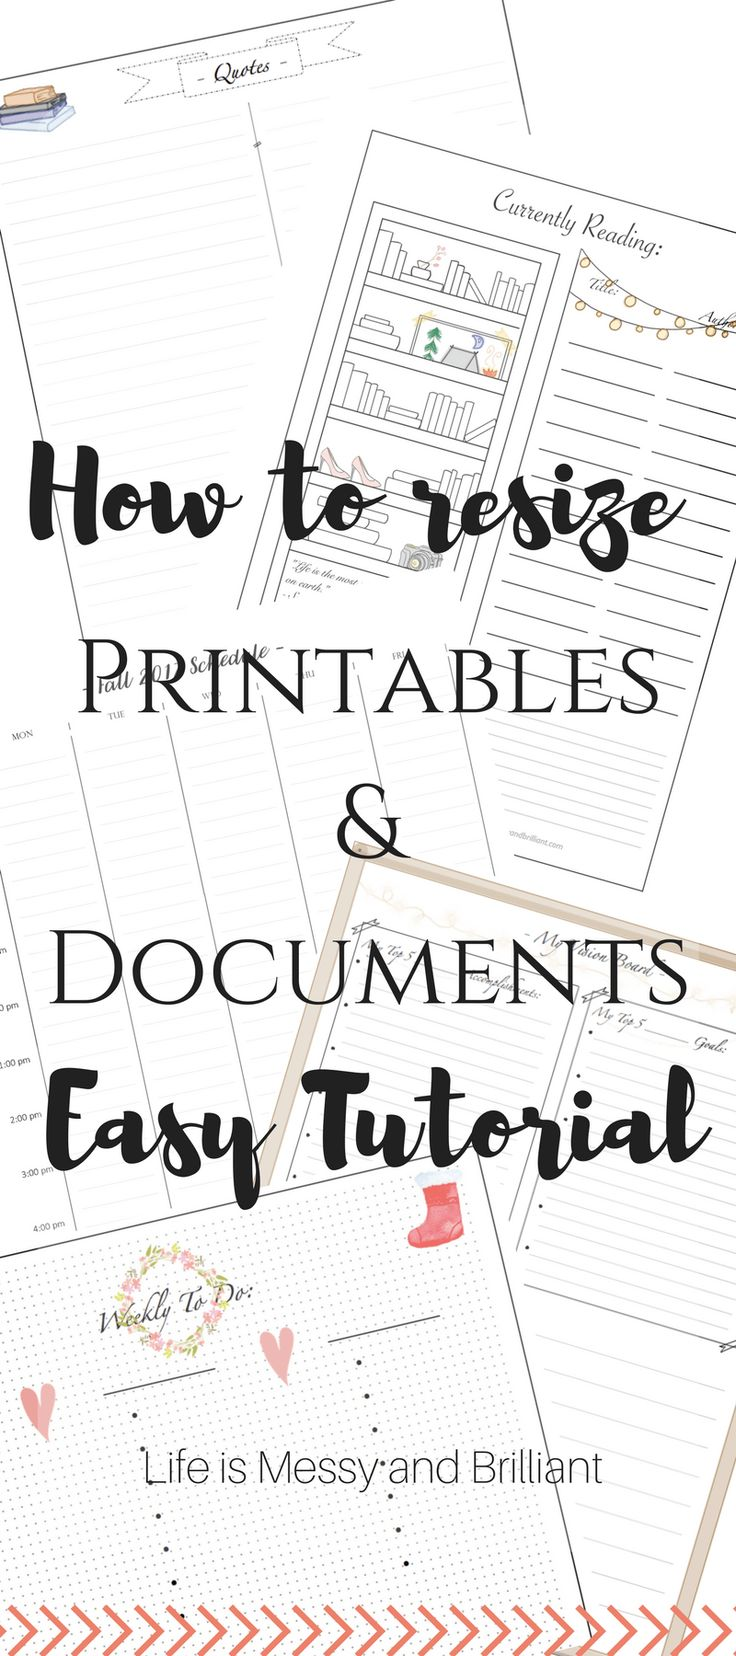 Hello, there! How to resize a printable is one of the most frequent questions I